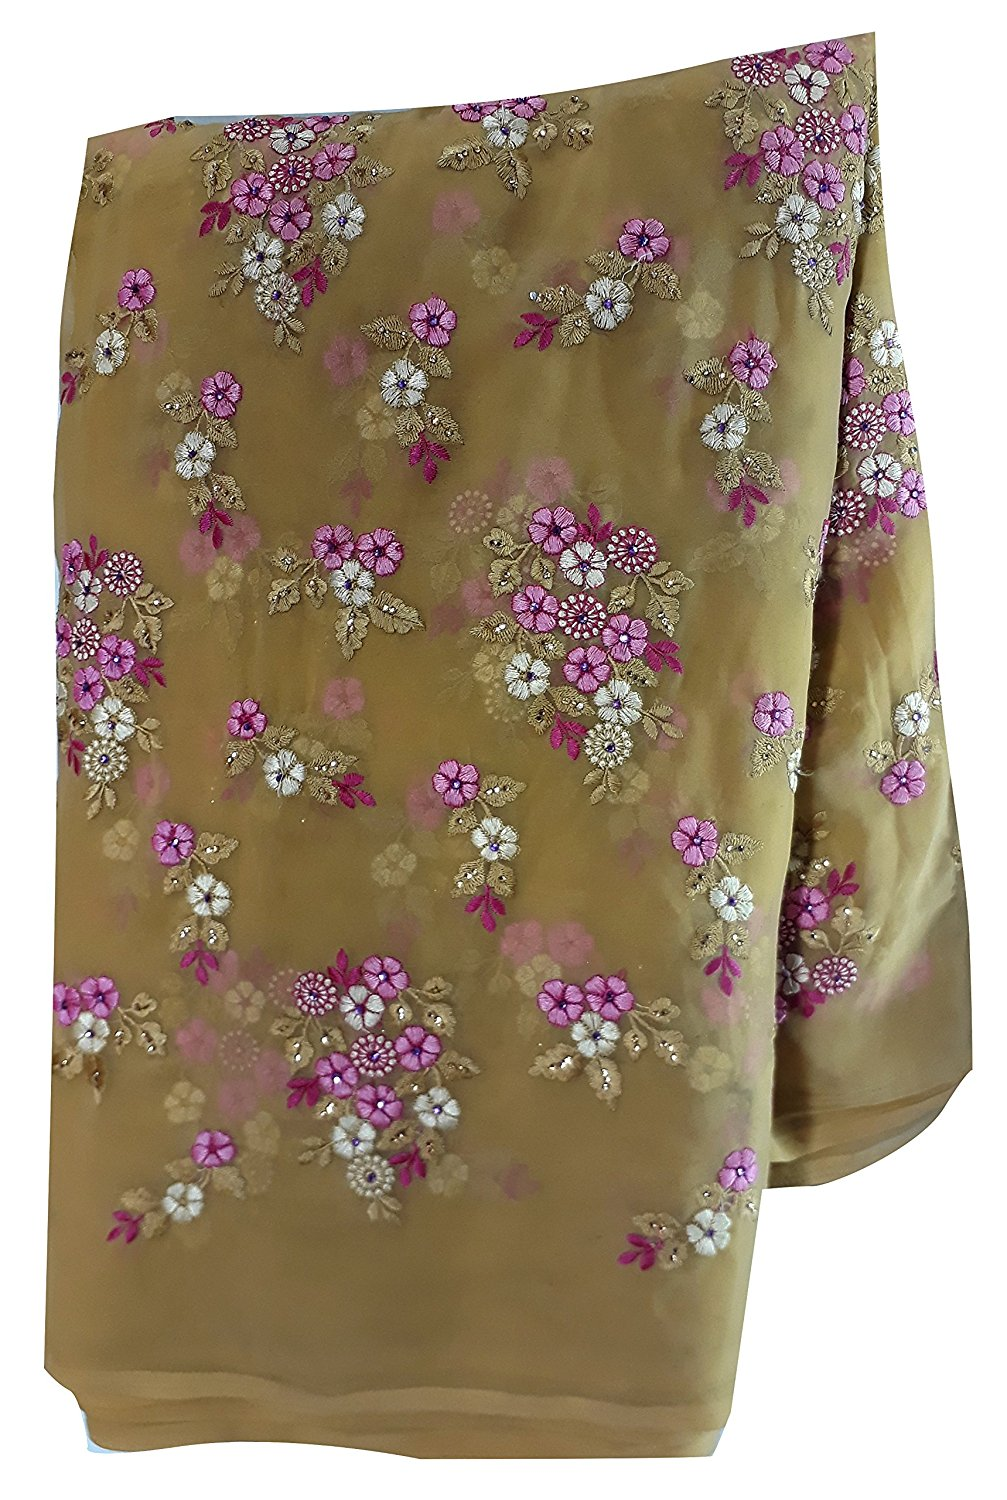 embroidery material suppliers blouse material online Embroidered Georgette Beige, Pink, White 44 inches Wide 1628